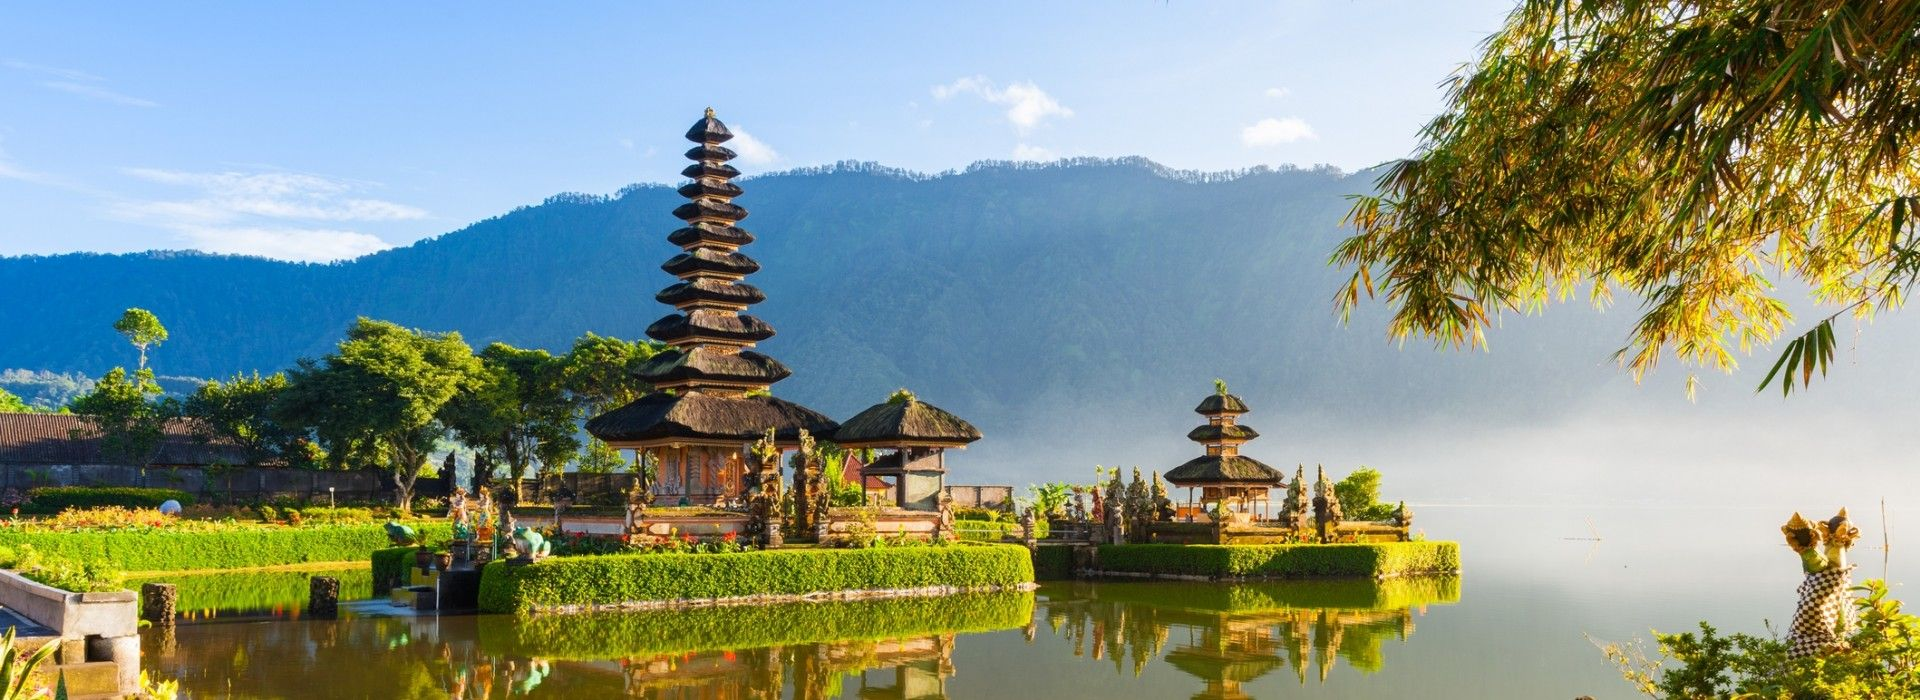 Beaches Tours in Indonesia